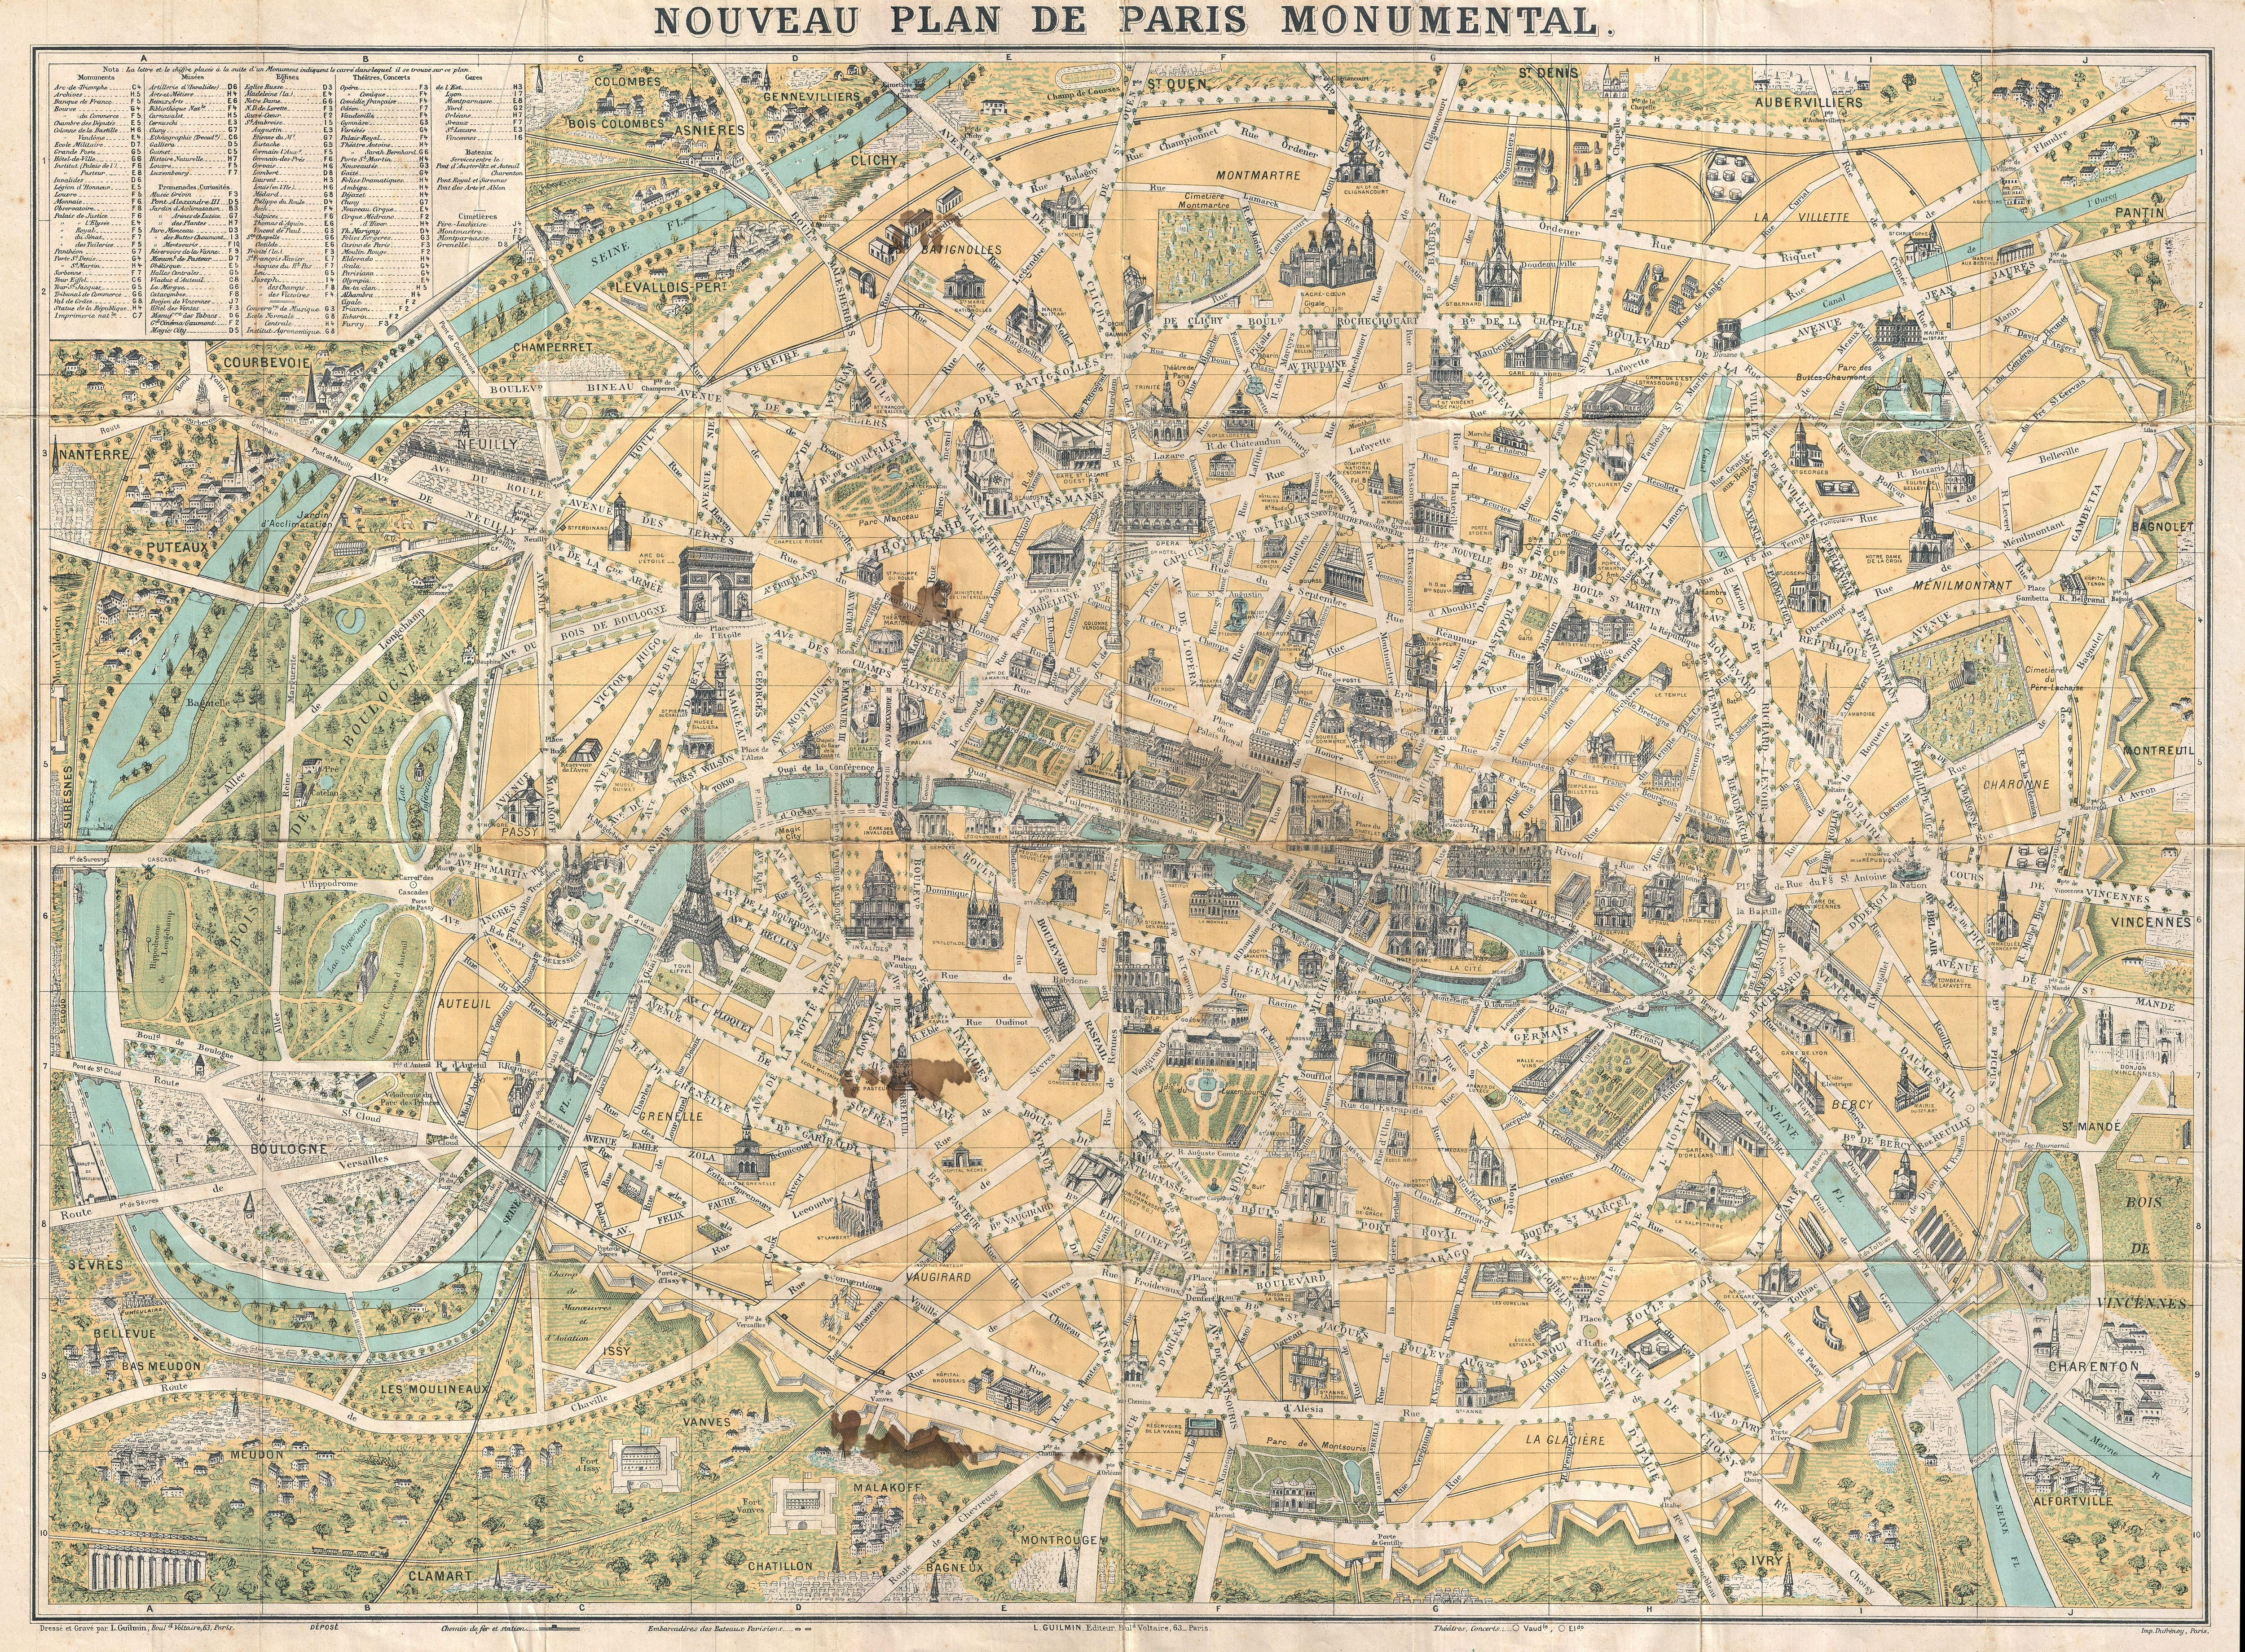 Street Maps of Paris France – Map of Paris with Monuments